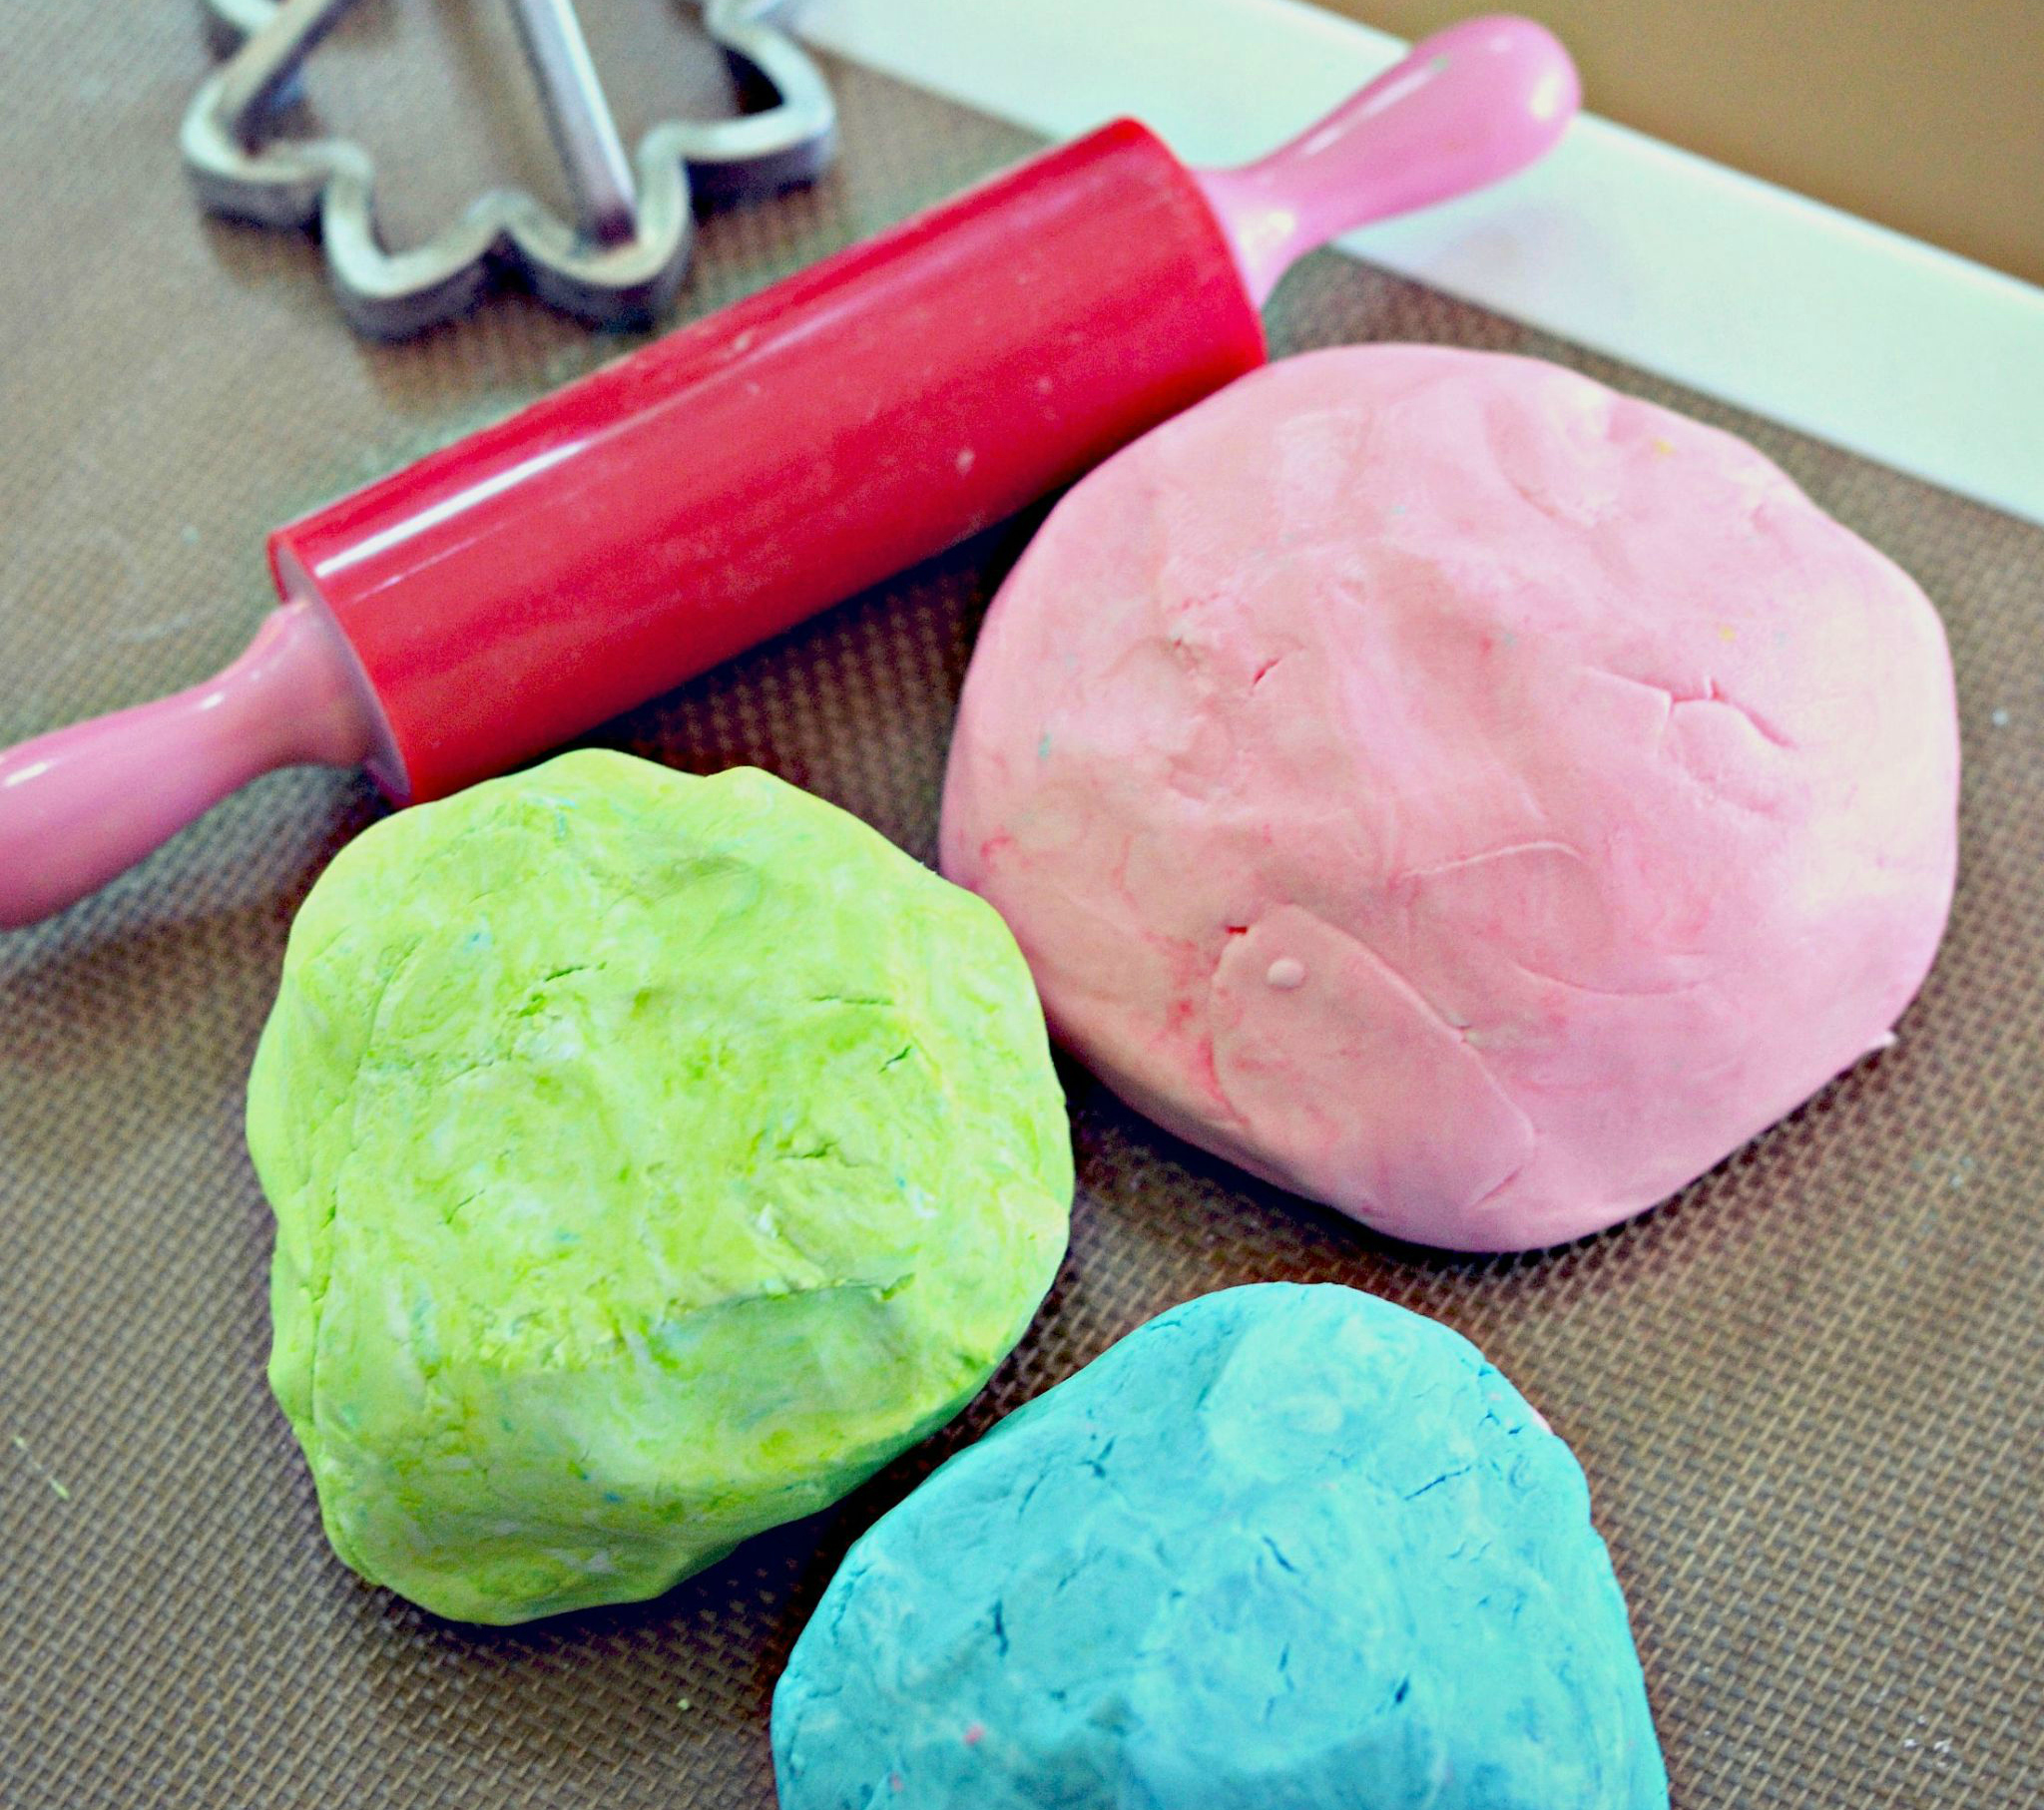 play doh in pink, blue, and green